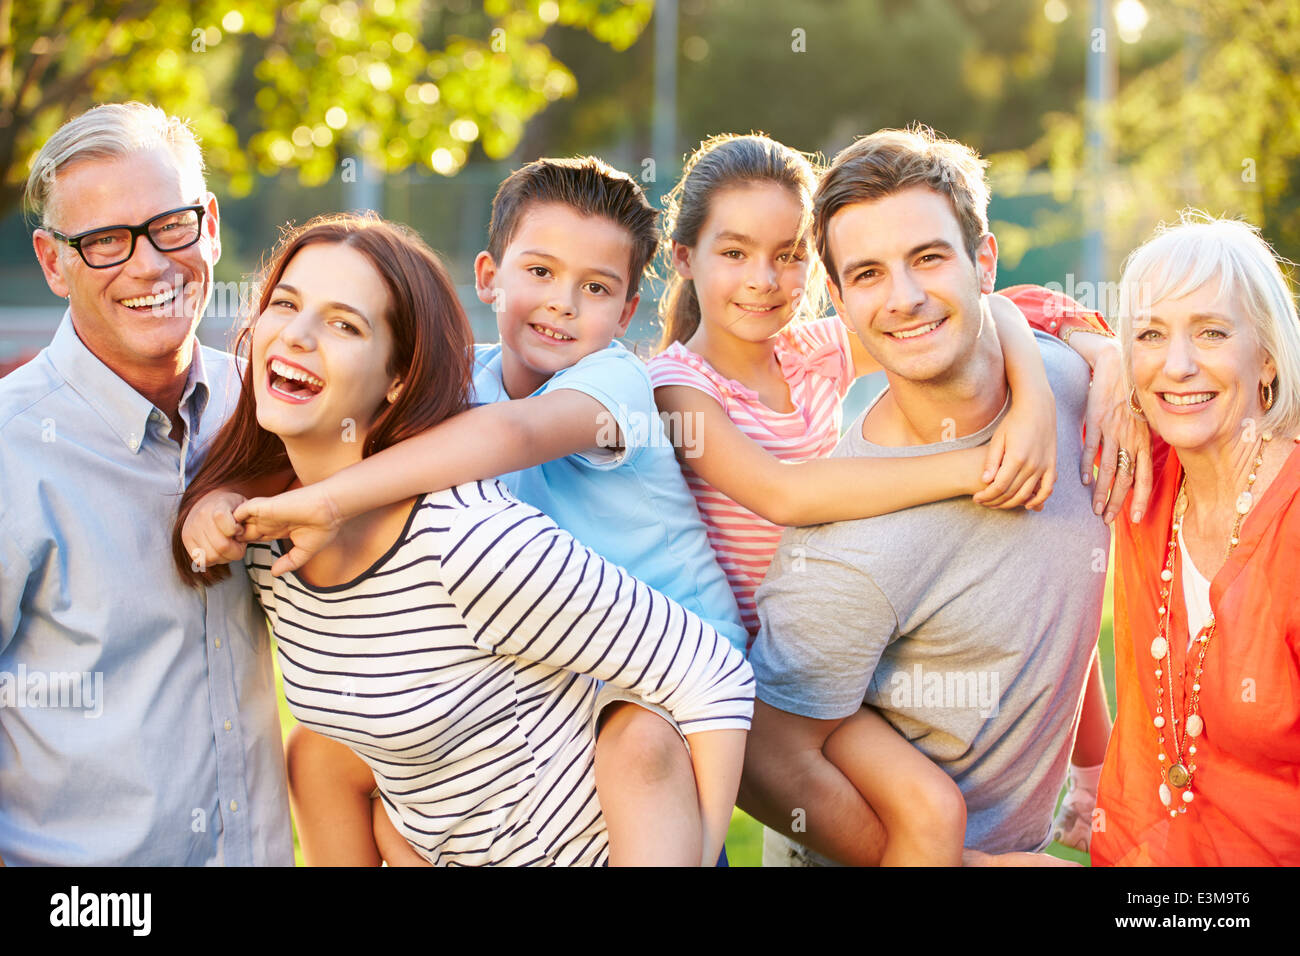 Outdoor Portrait Of Multi-Generation Family In Park - Stock Image